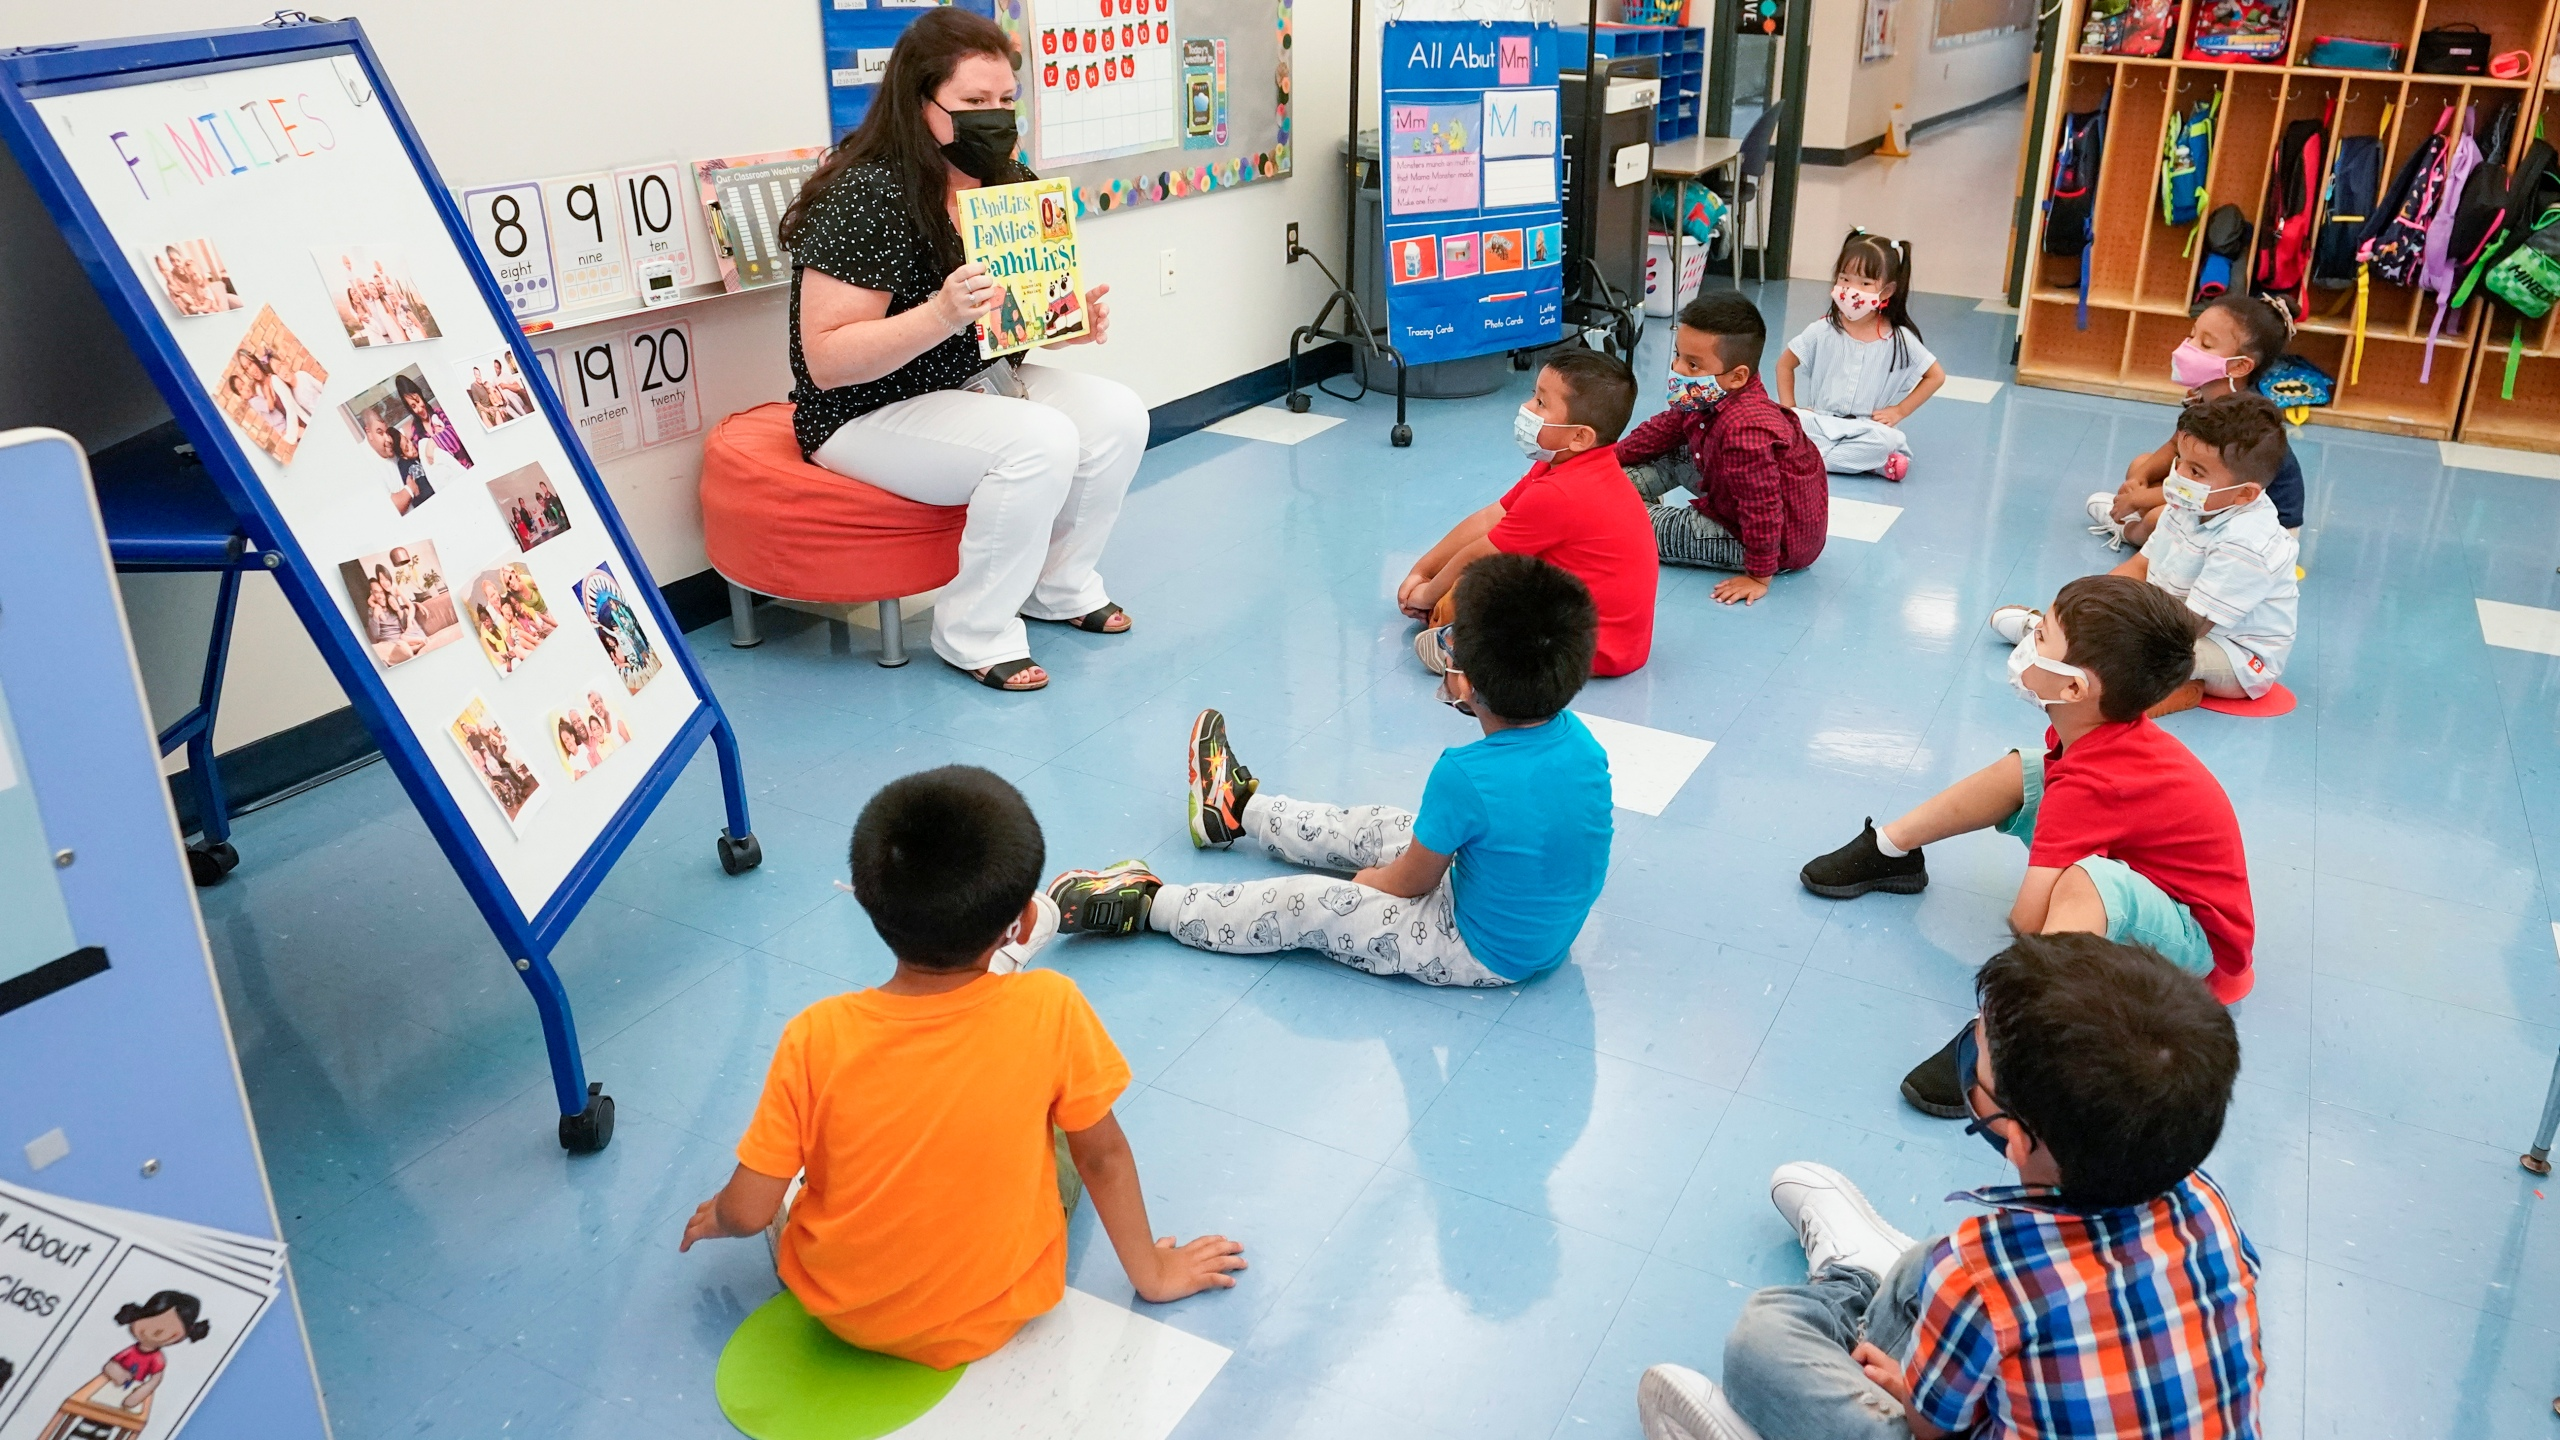 In this Sept. 16, 2021, file photo Pre-K teacher Vera Csizmadia teaches 3-and 4-year-old students in her classroom at the Dr. Charles Smith Early Childhood Center in Palisades Park, N.J. As Democrats push ahead with President Joe Biden's $3.5 trillion rebuilding plan, they are promising historic investments across all levels of education. The proposal includes universal prekindergarten, two years of free community college and expanded child care subsidies, among others. (AP Photo/Mary Altaffer, File)